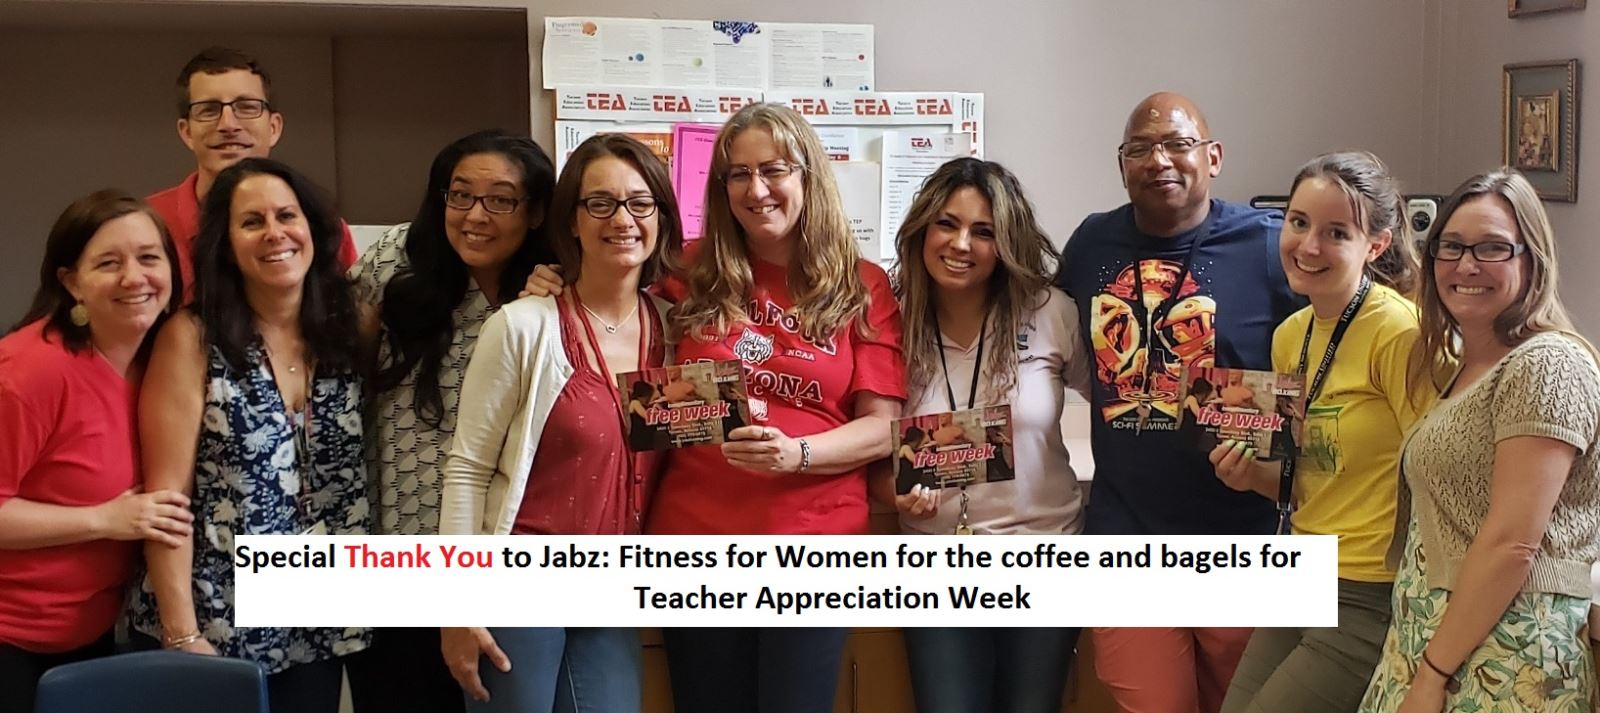 Photo of Teachers With Text Special Thank You To Jabz Fittness For Women for the coffee and bagels for Teacher Appreciation Week